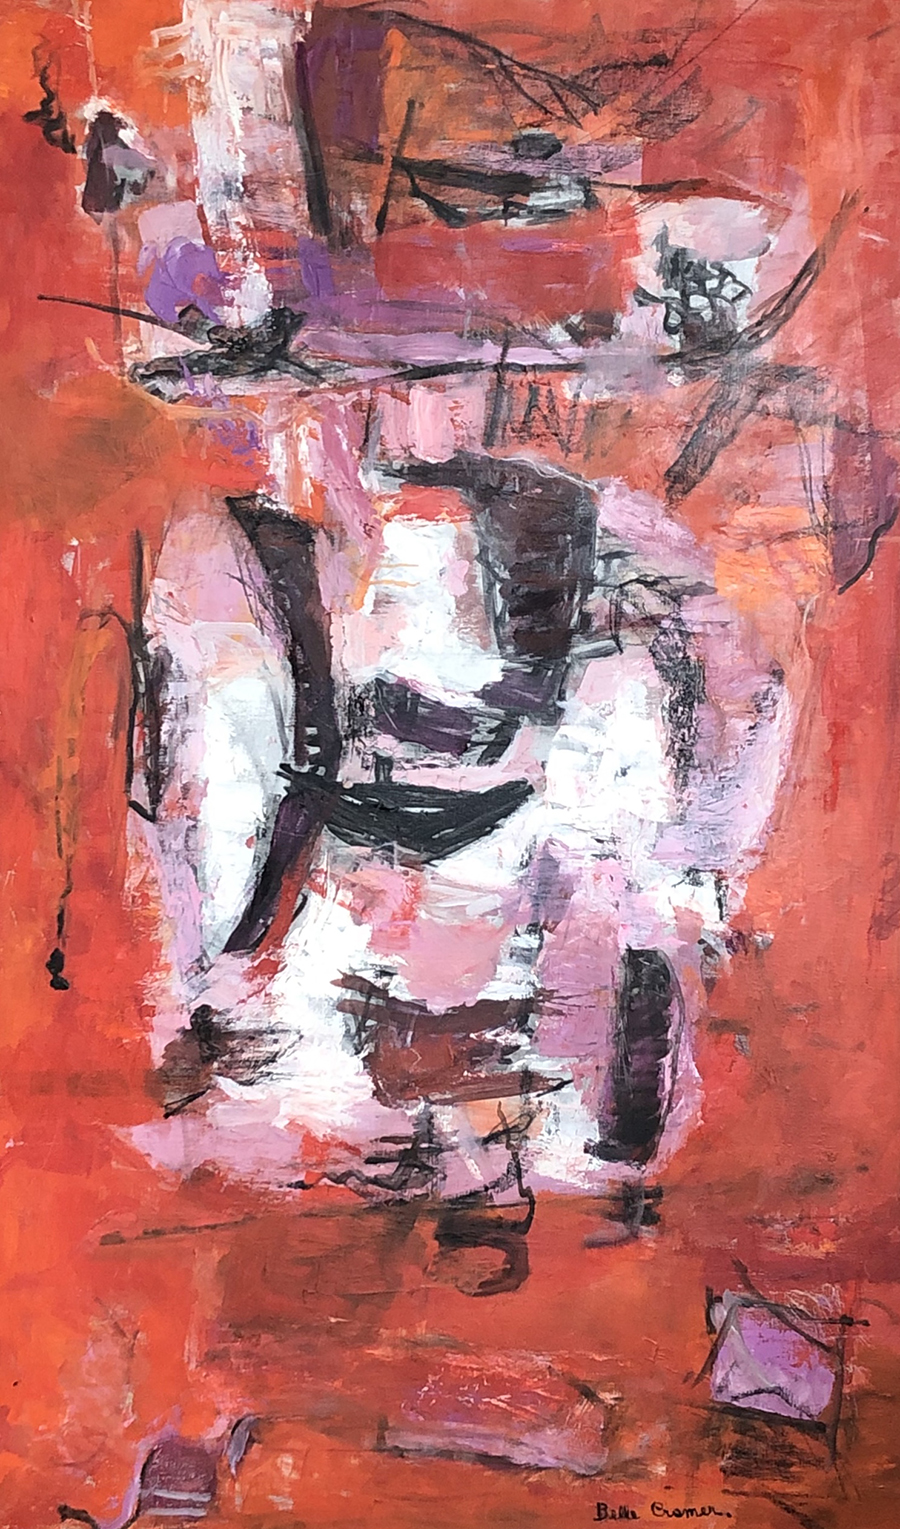 Red Painting, 1963